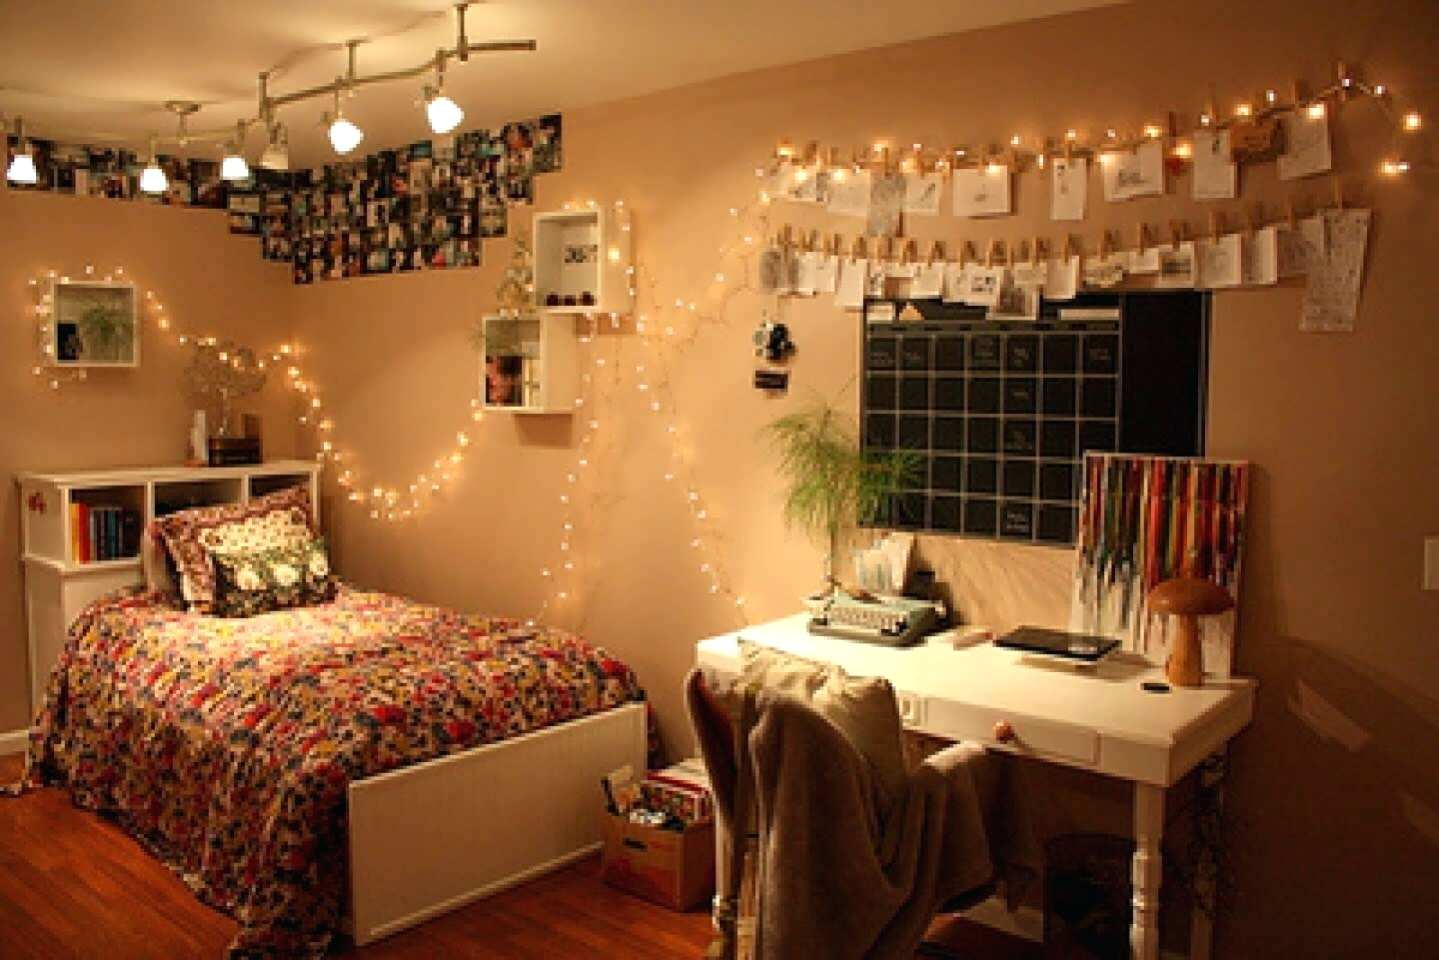 10 Pretty Ideas To Decorate Your Bedroom cute ideas for your room 7 cute ways to decorate your bedroom cute